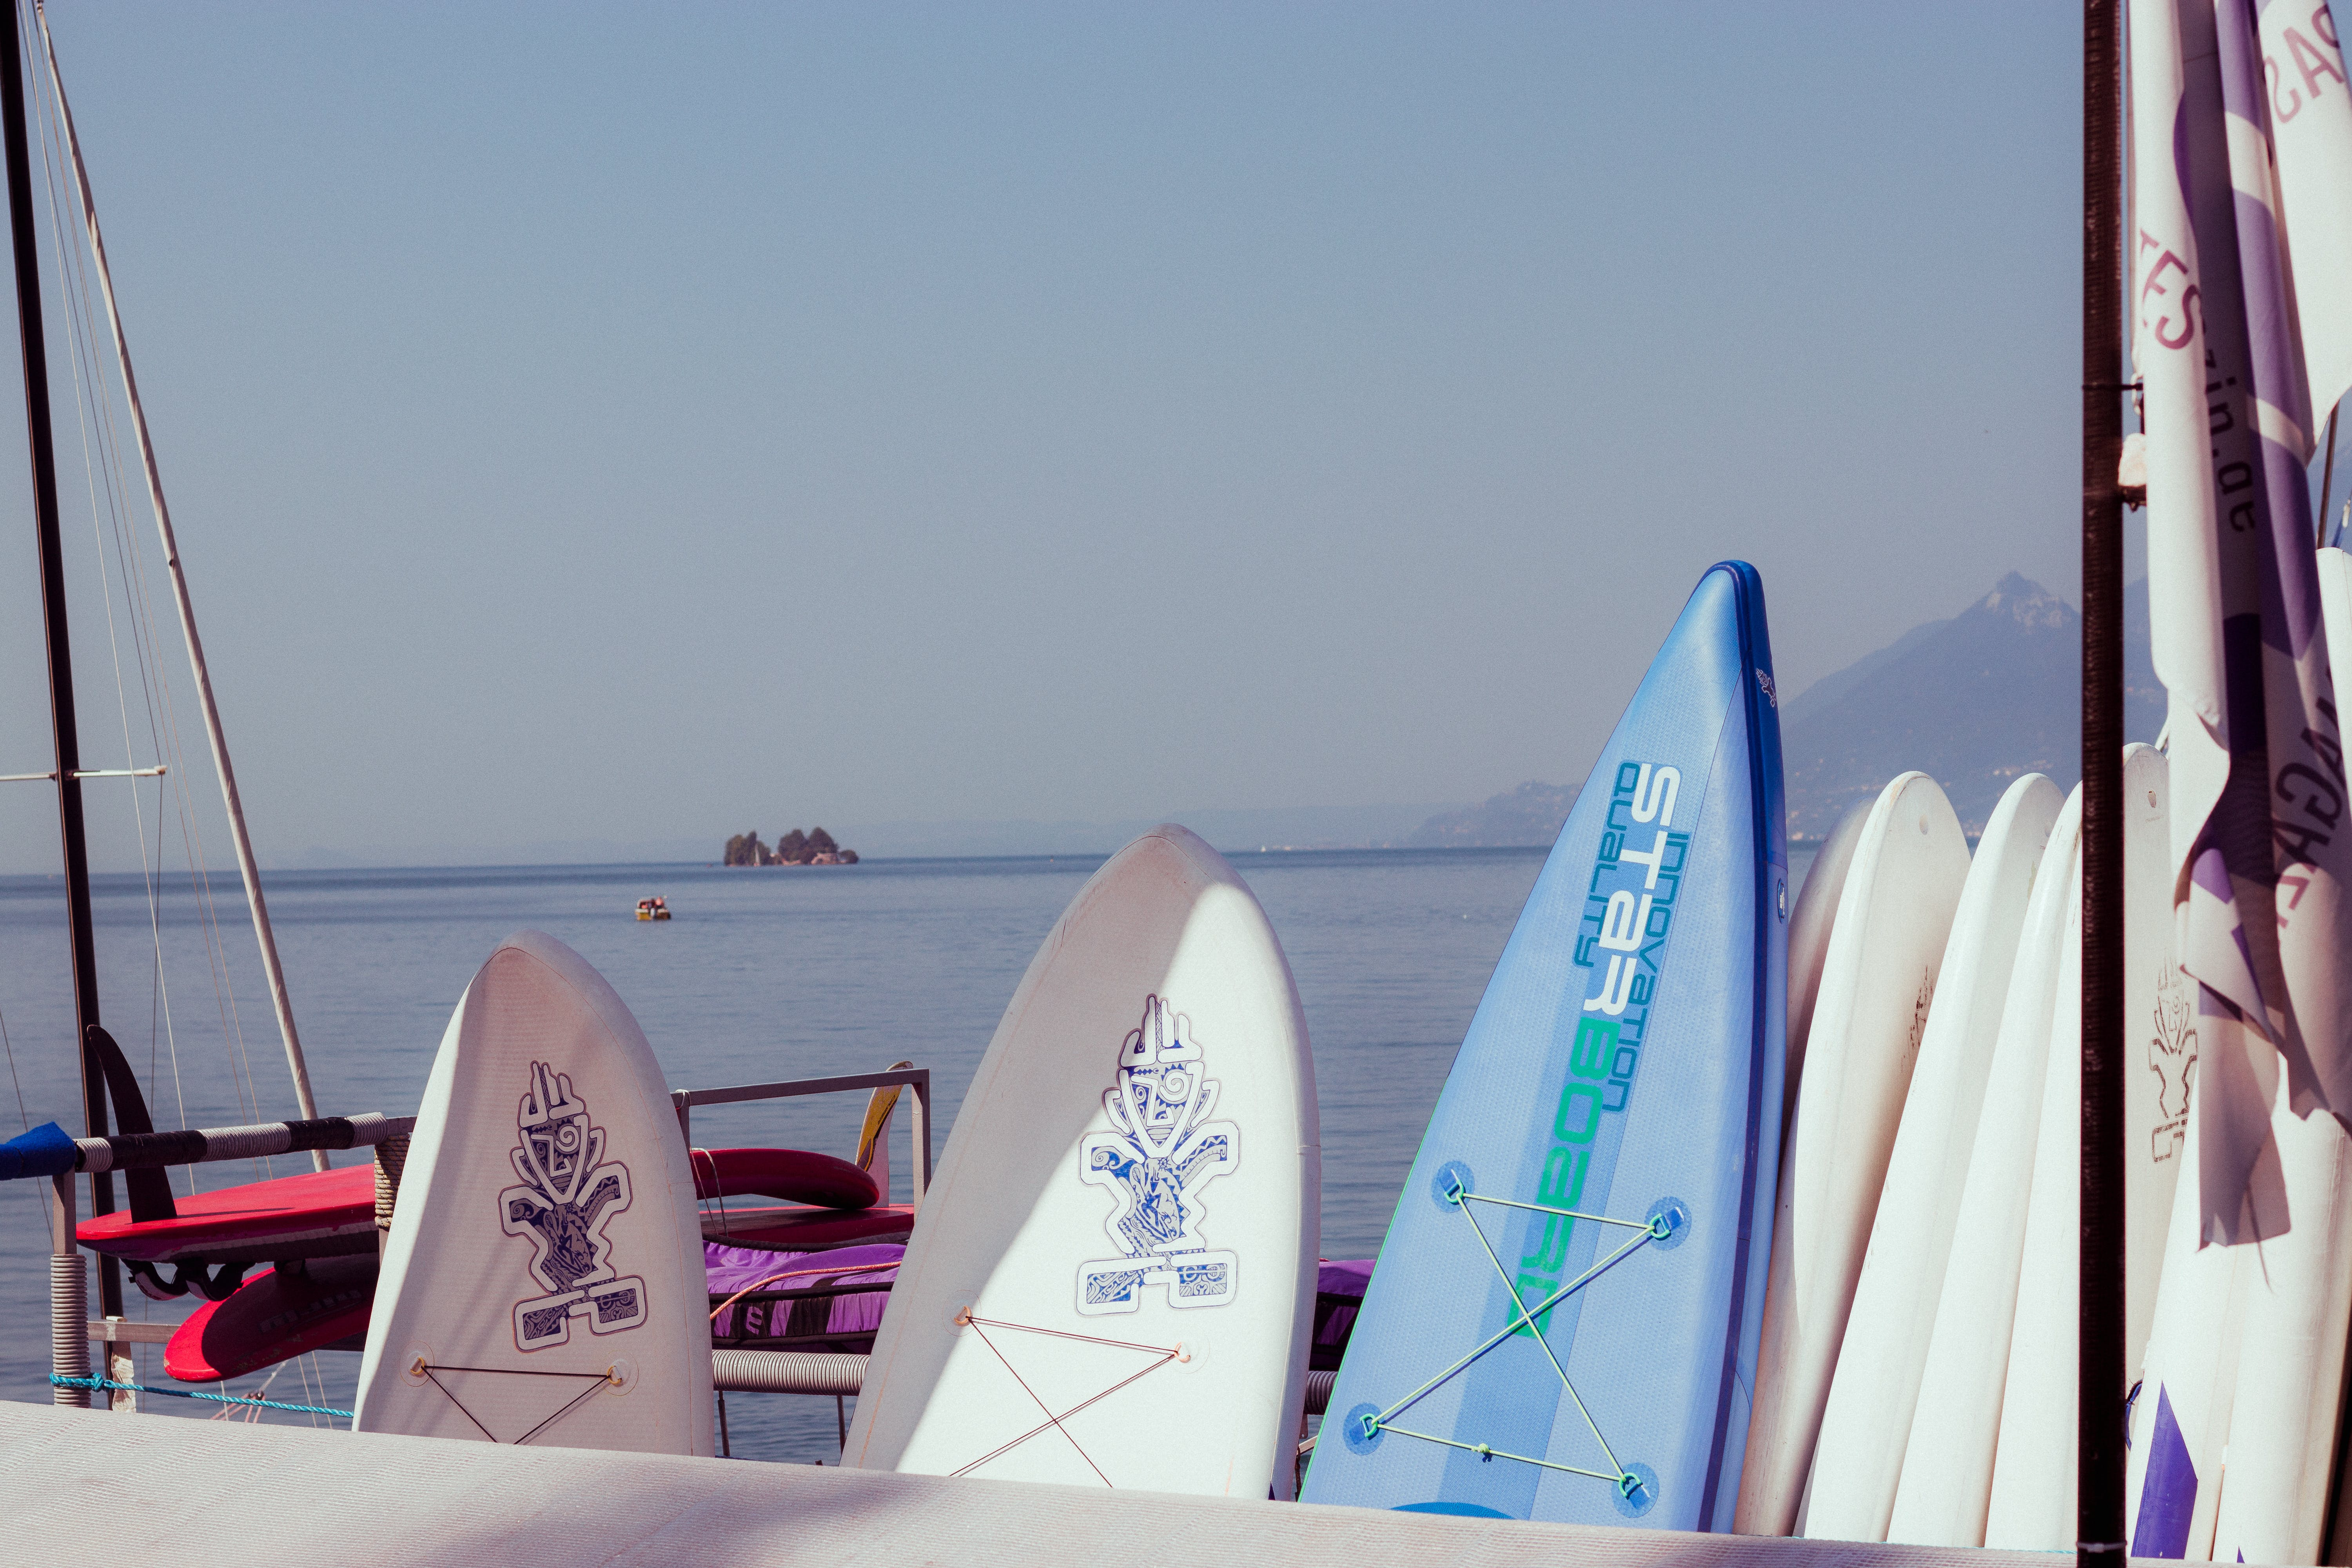 Surfboards Leaning on White Handrails